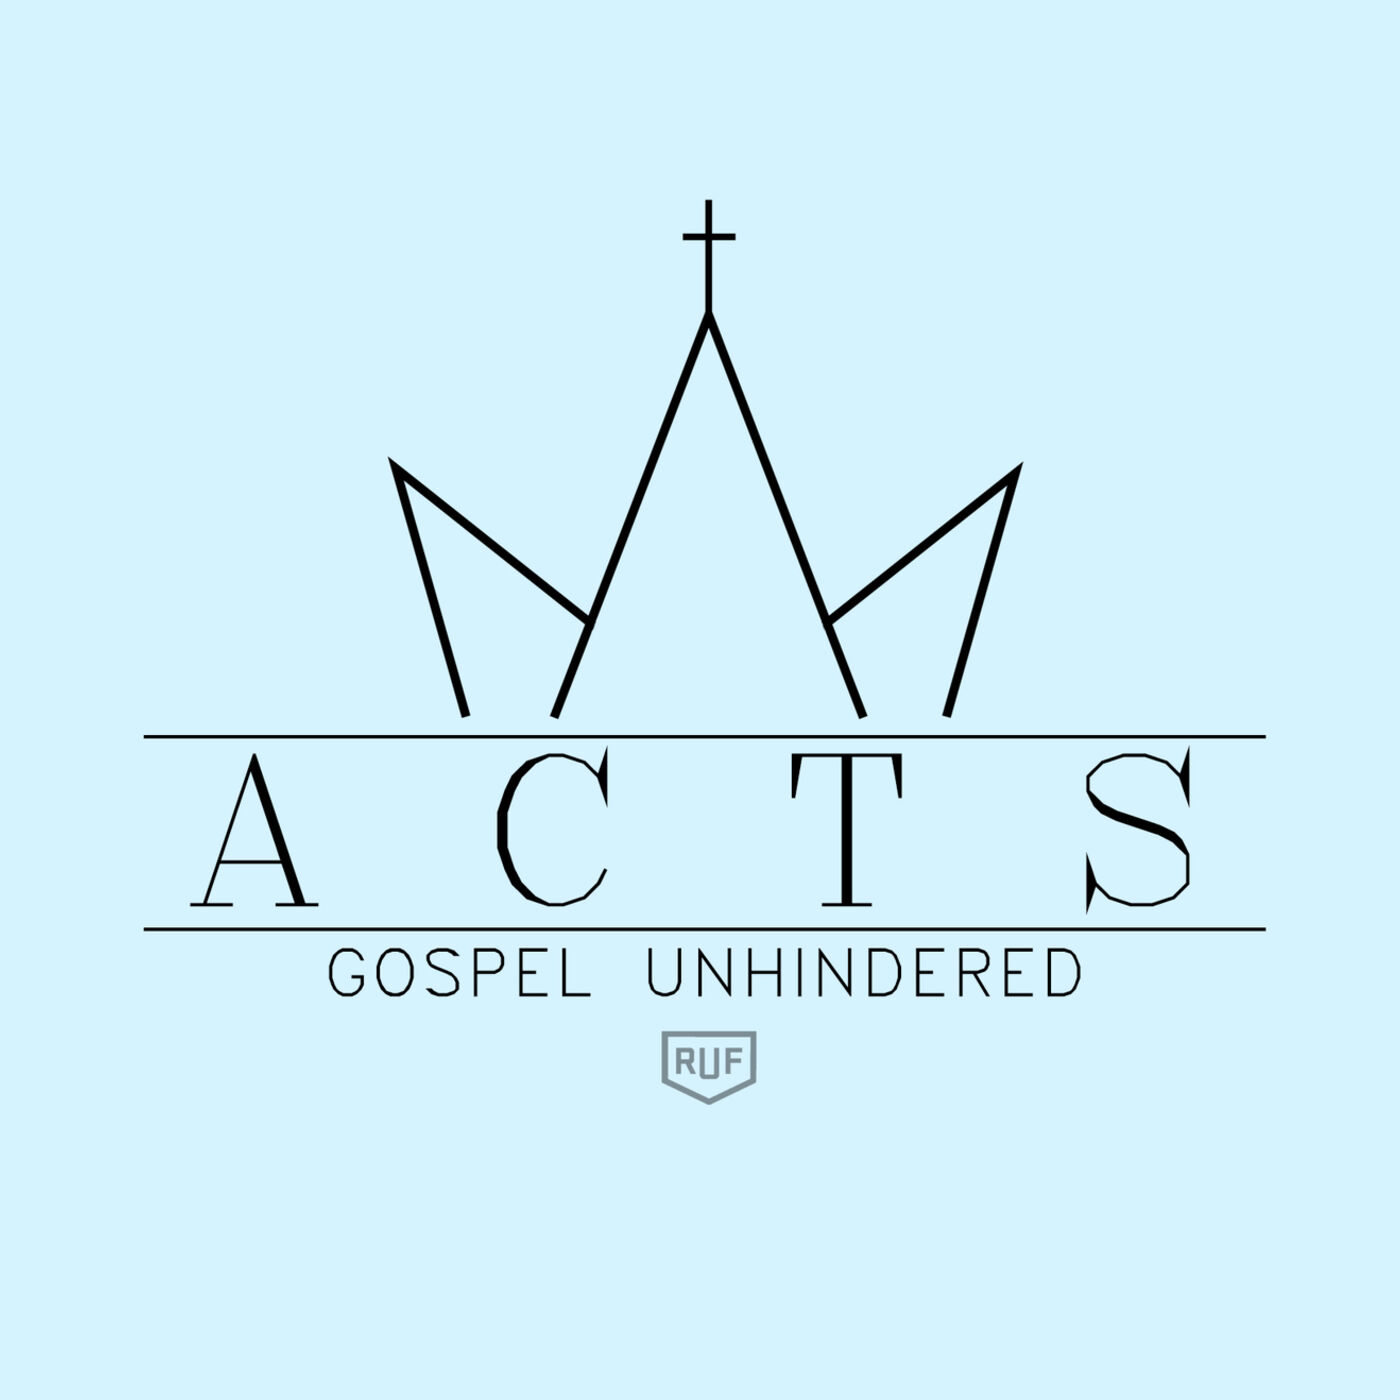 Gospel Unhindered 04 - Acts 3:1-26 - From Lame to Leaping